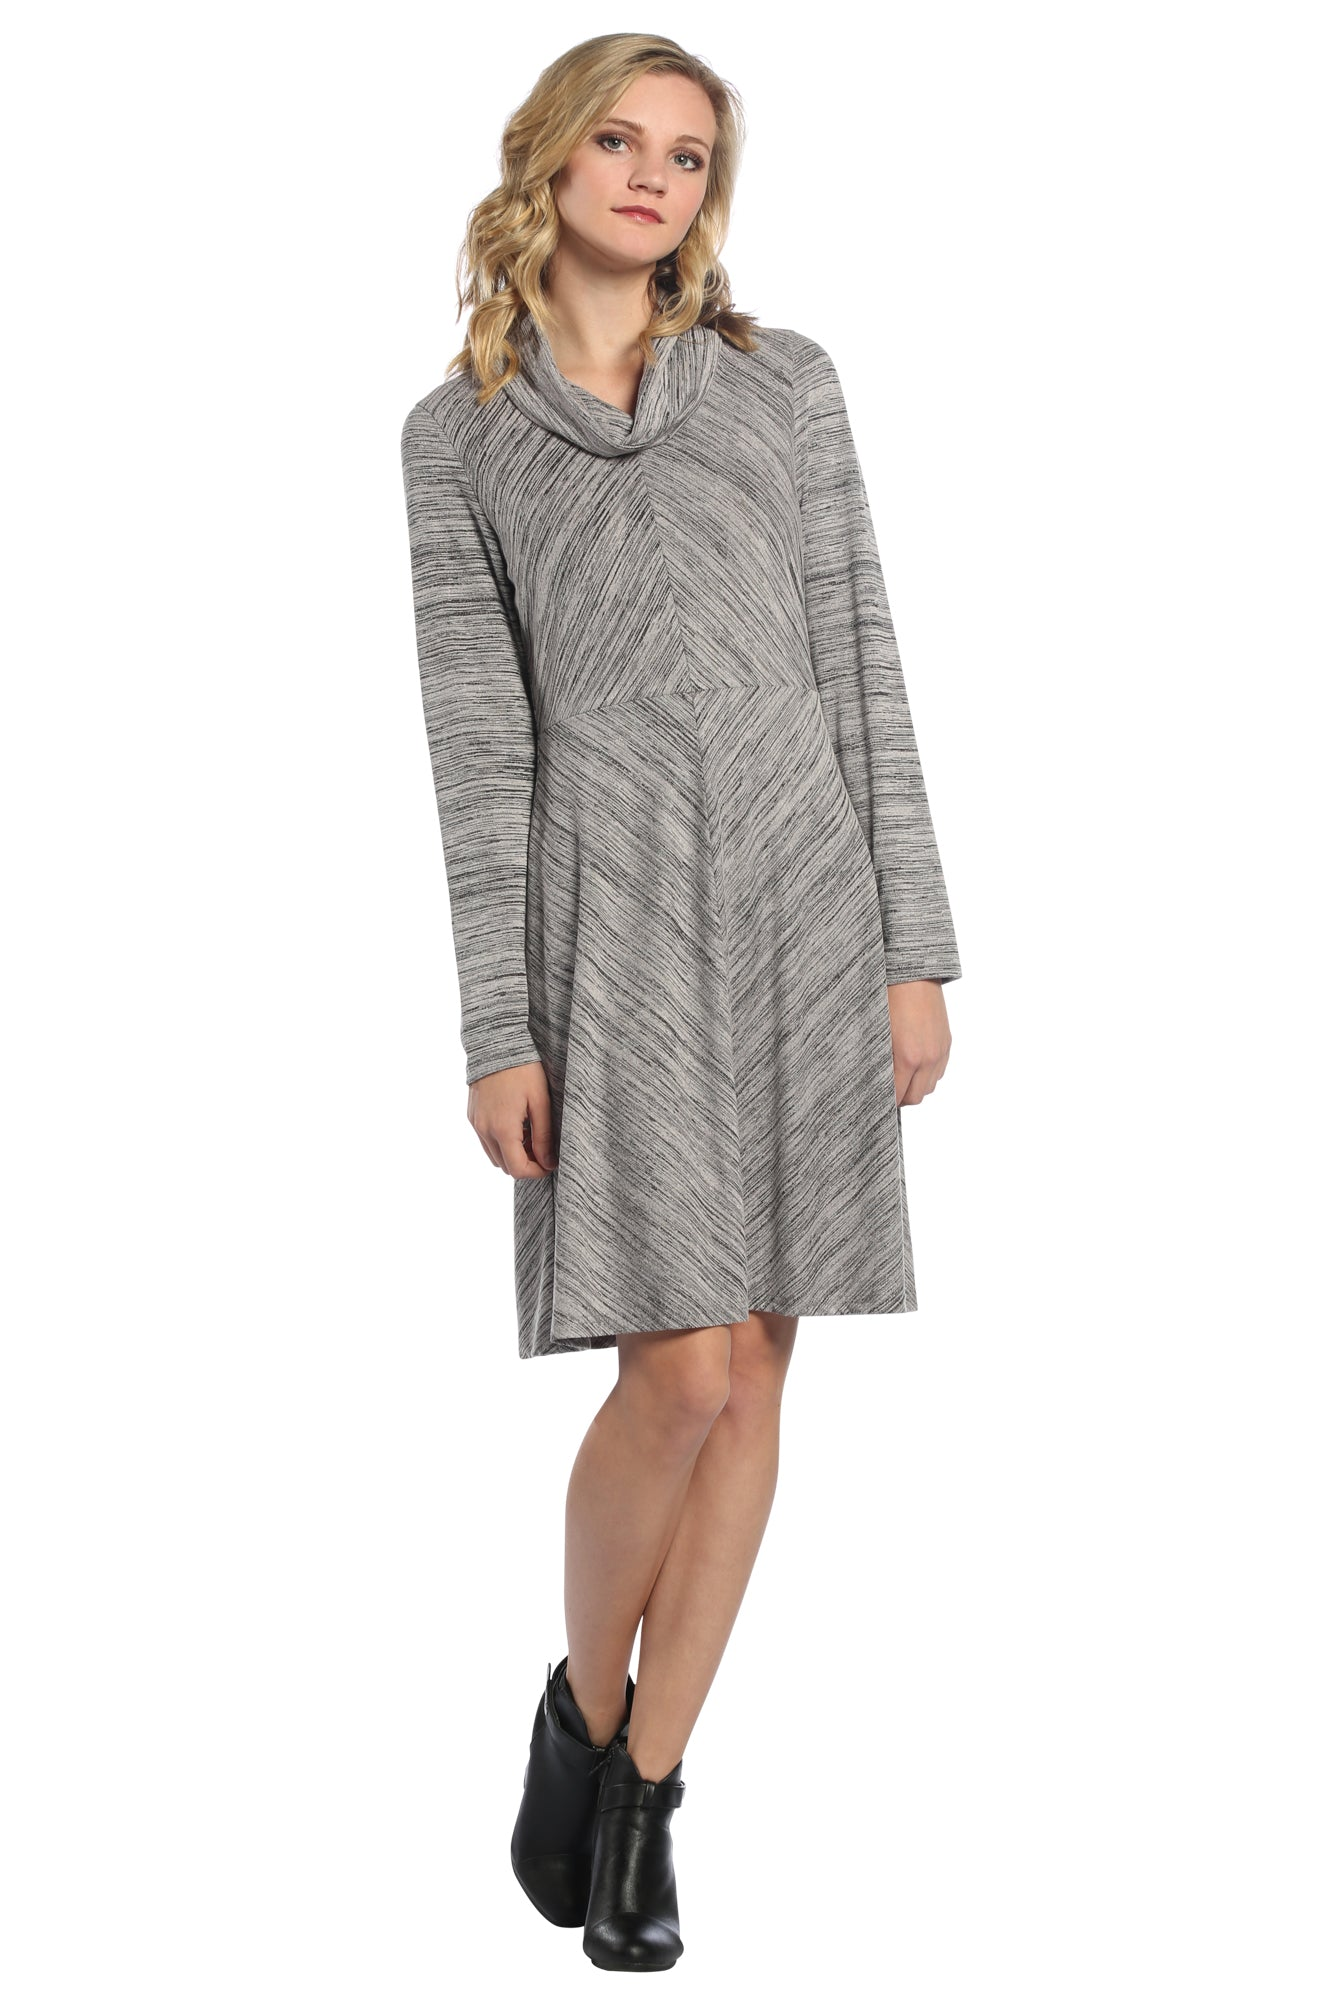 Diamond Space Dye Cowl Neck Dress in Grey